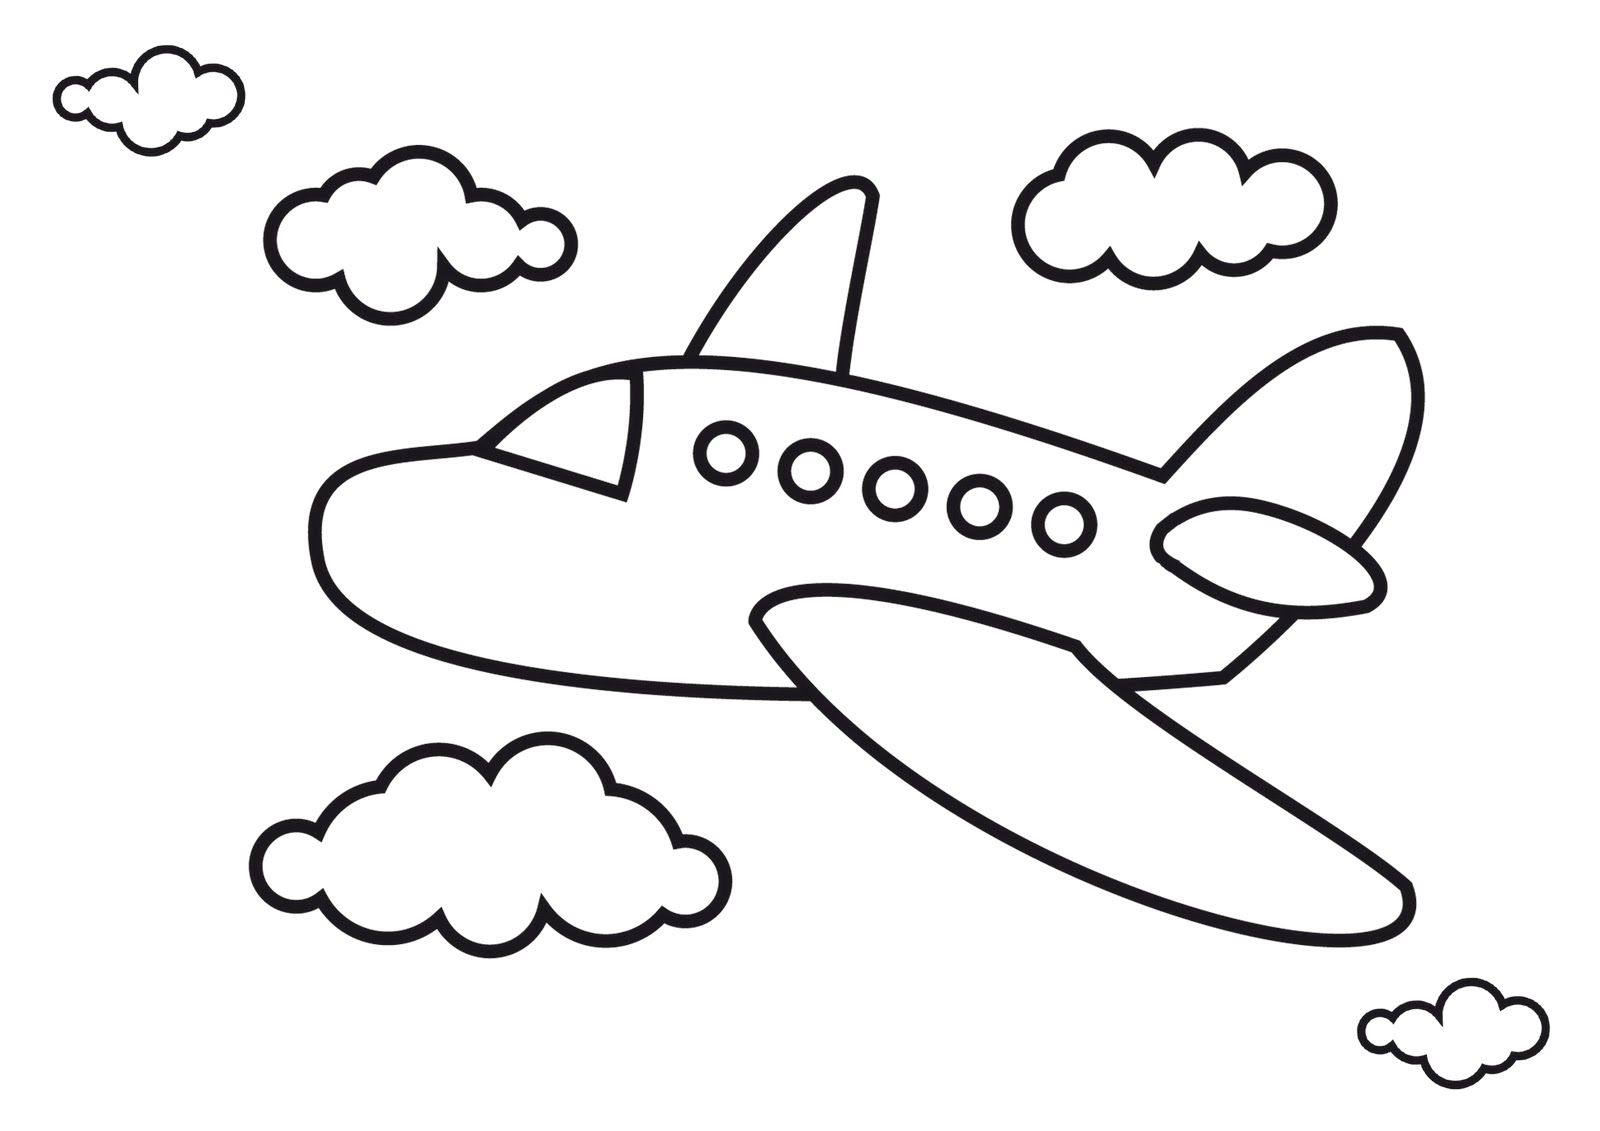 Airplane coloring pages airplanes pictures for kids viewing gallery for easy airplanes wallpaper